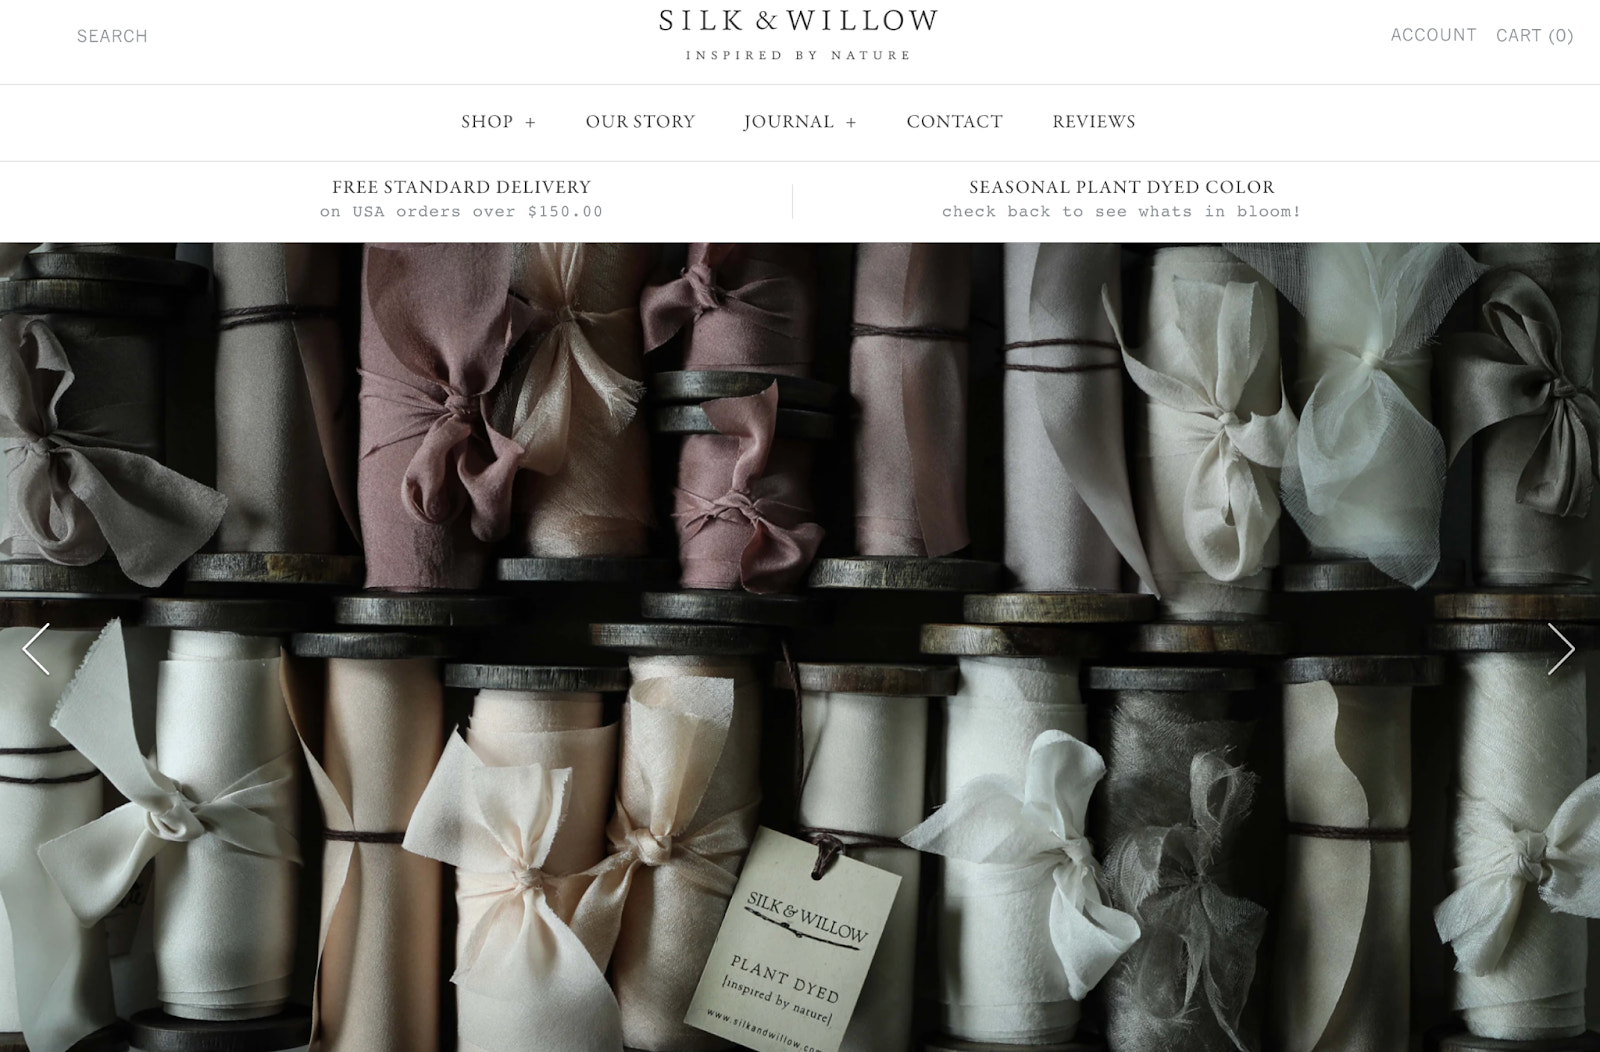 Sillow + Willow boutique